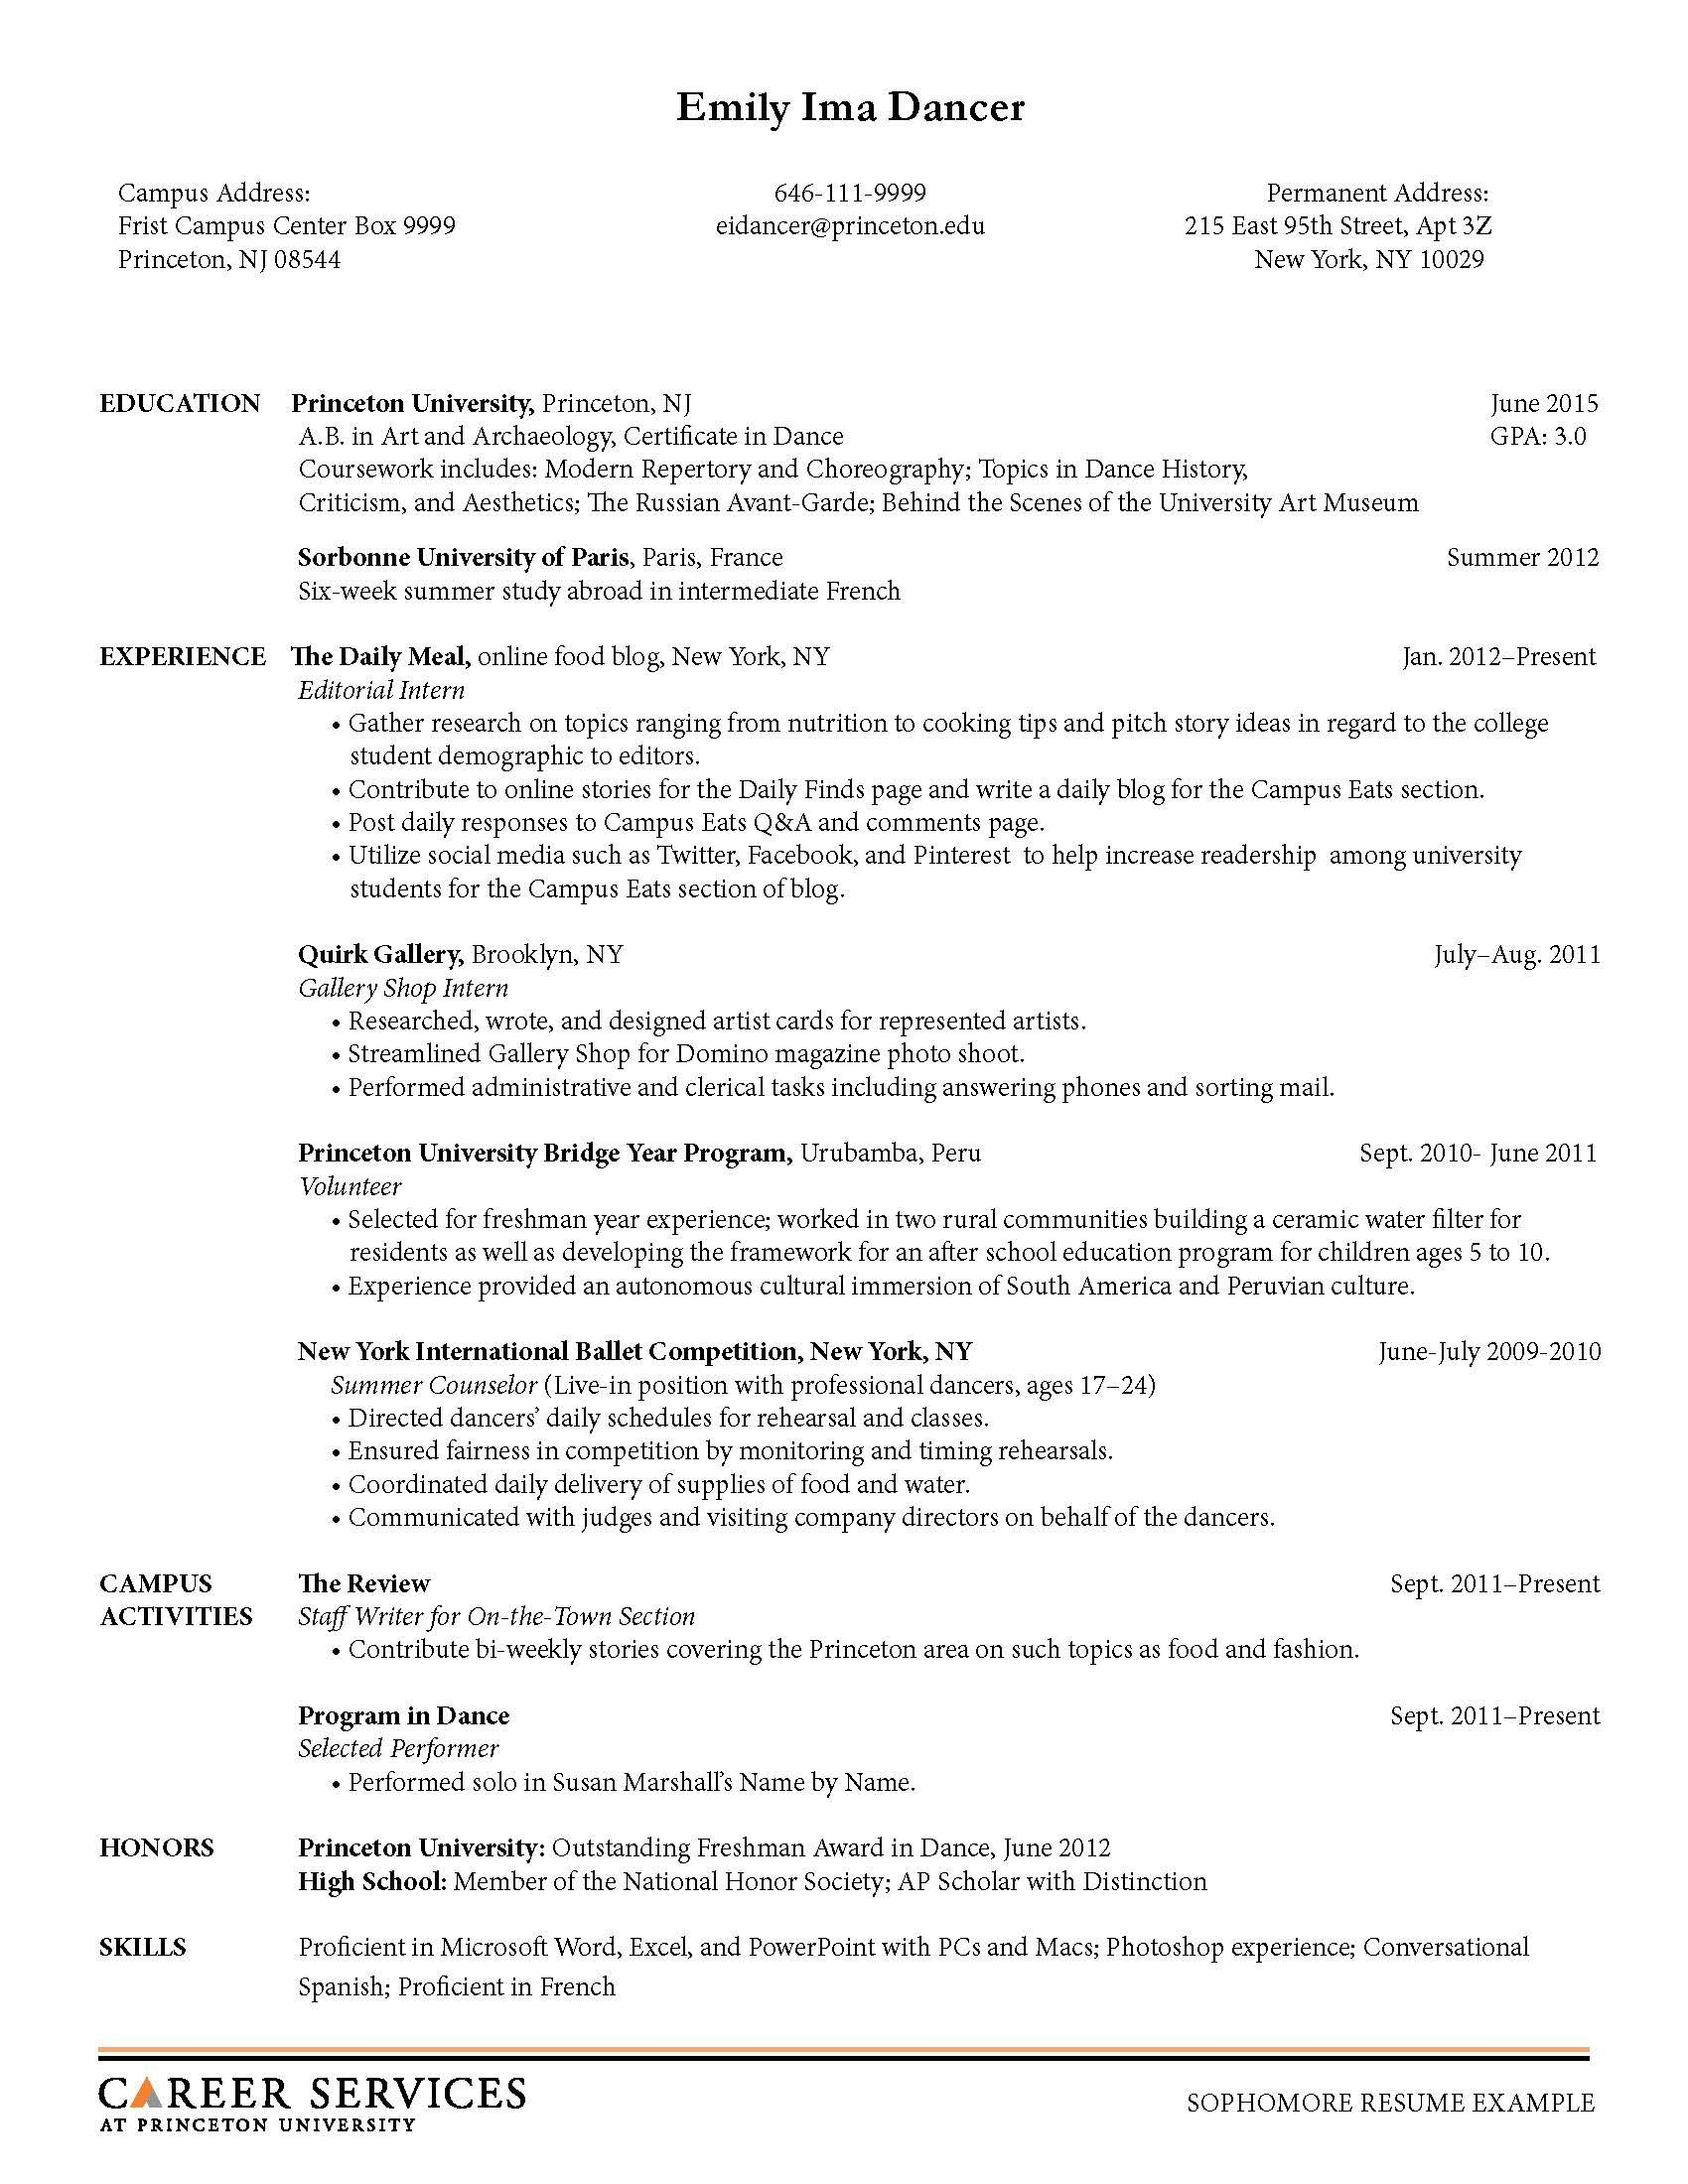 Opposenewapstandardsus  Terrific Sample Resume Resume And Career On Pinterest With Gorgeous Soft Skills On Resume Besides Sample Office Assistant Resume Furthermore Medical Esthetician Resume With Archaic Example Of Administrative Assistant Resume Also What To Put In The Summary Of A Resume In Addition Resume For Barista And Wording For Resume As Well As Architects Resume Additionally Proper Font For Resume From Pinterestcom With Opposenewapstandardsus  Gorgeous Sample Resume Resume And Career On Pinterest With Archaic Soft Skills On Resume Besides Sample Office Assistant Resume Furthermore Medical Esthetician Resume And Terrific Example Of Administrative Assistant Resume Also What To Put In The Summary Of A Resume In Addition Resume For Barista From Pinterestcom